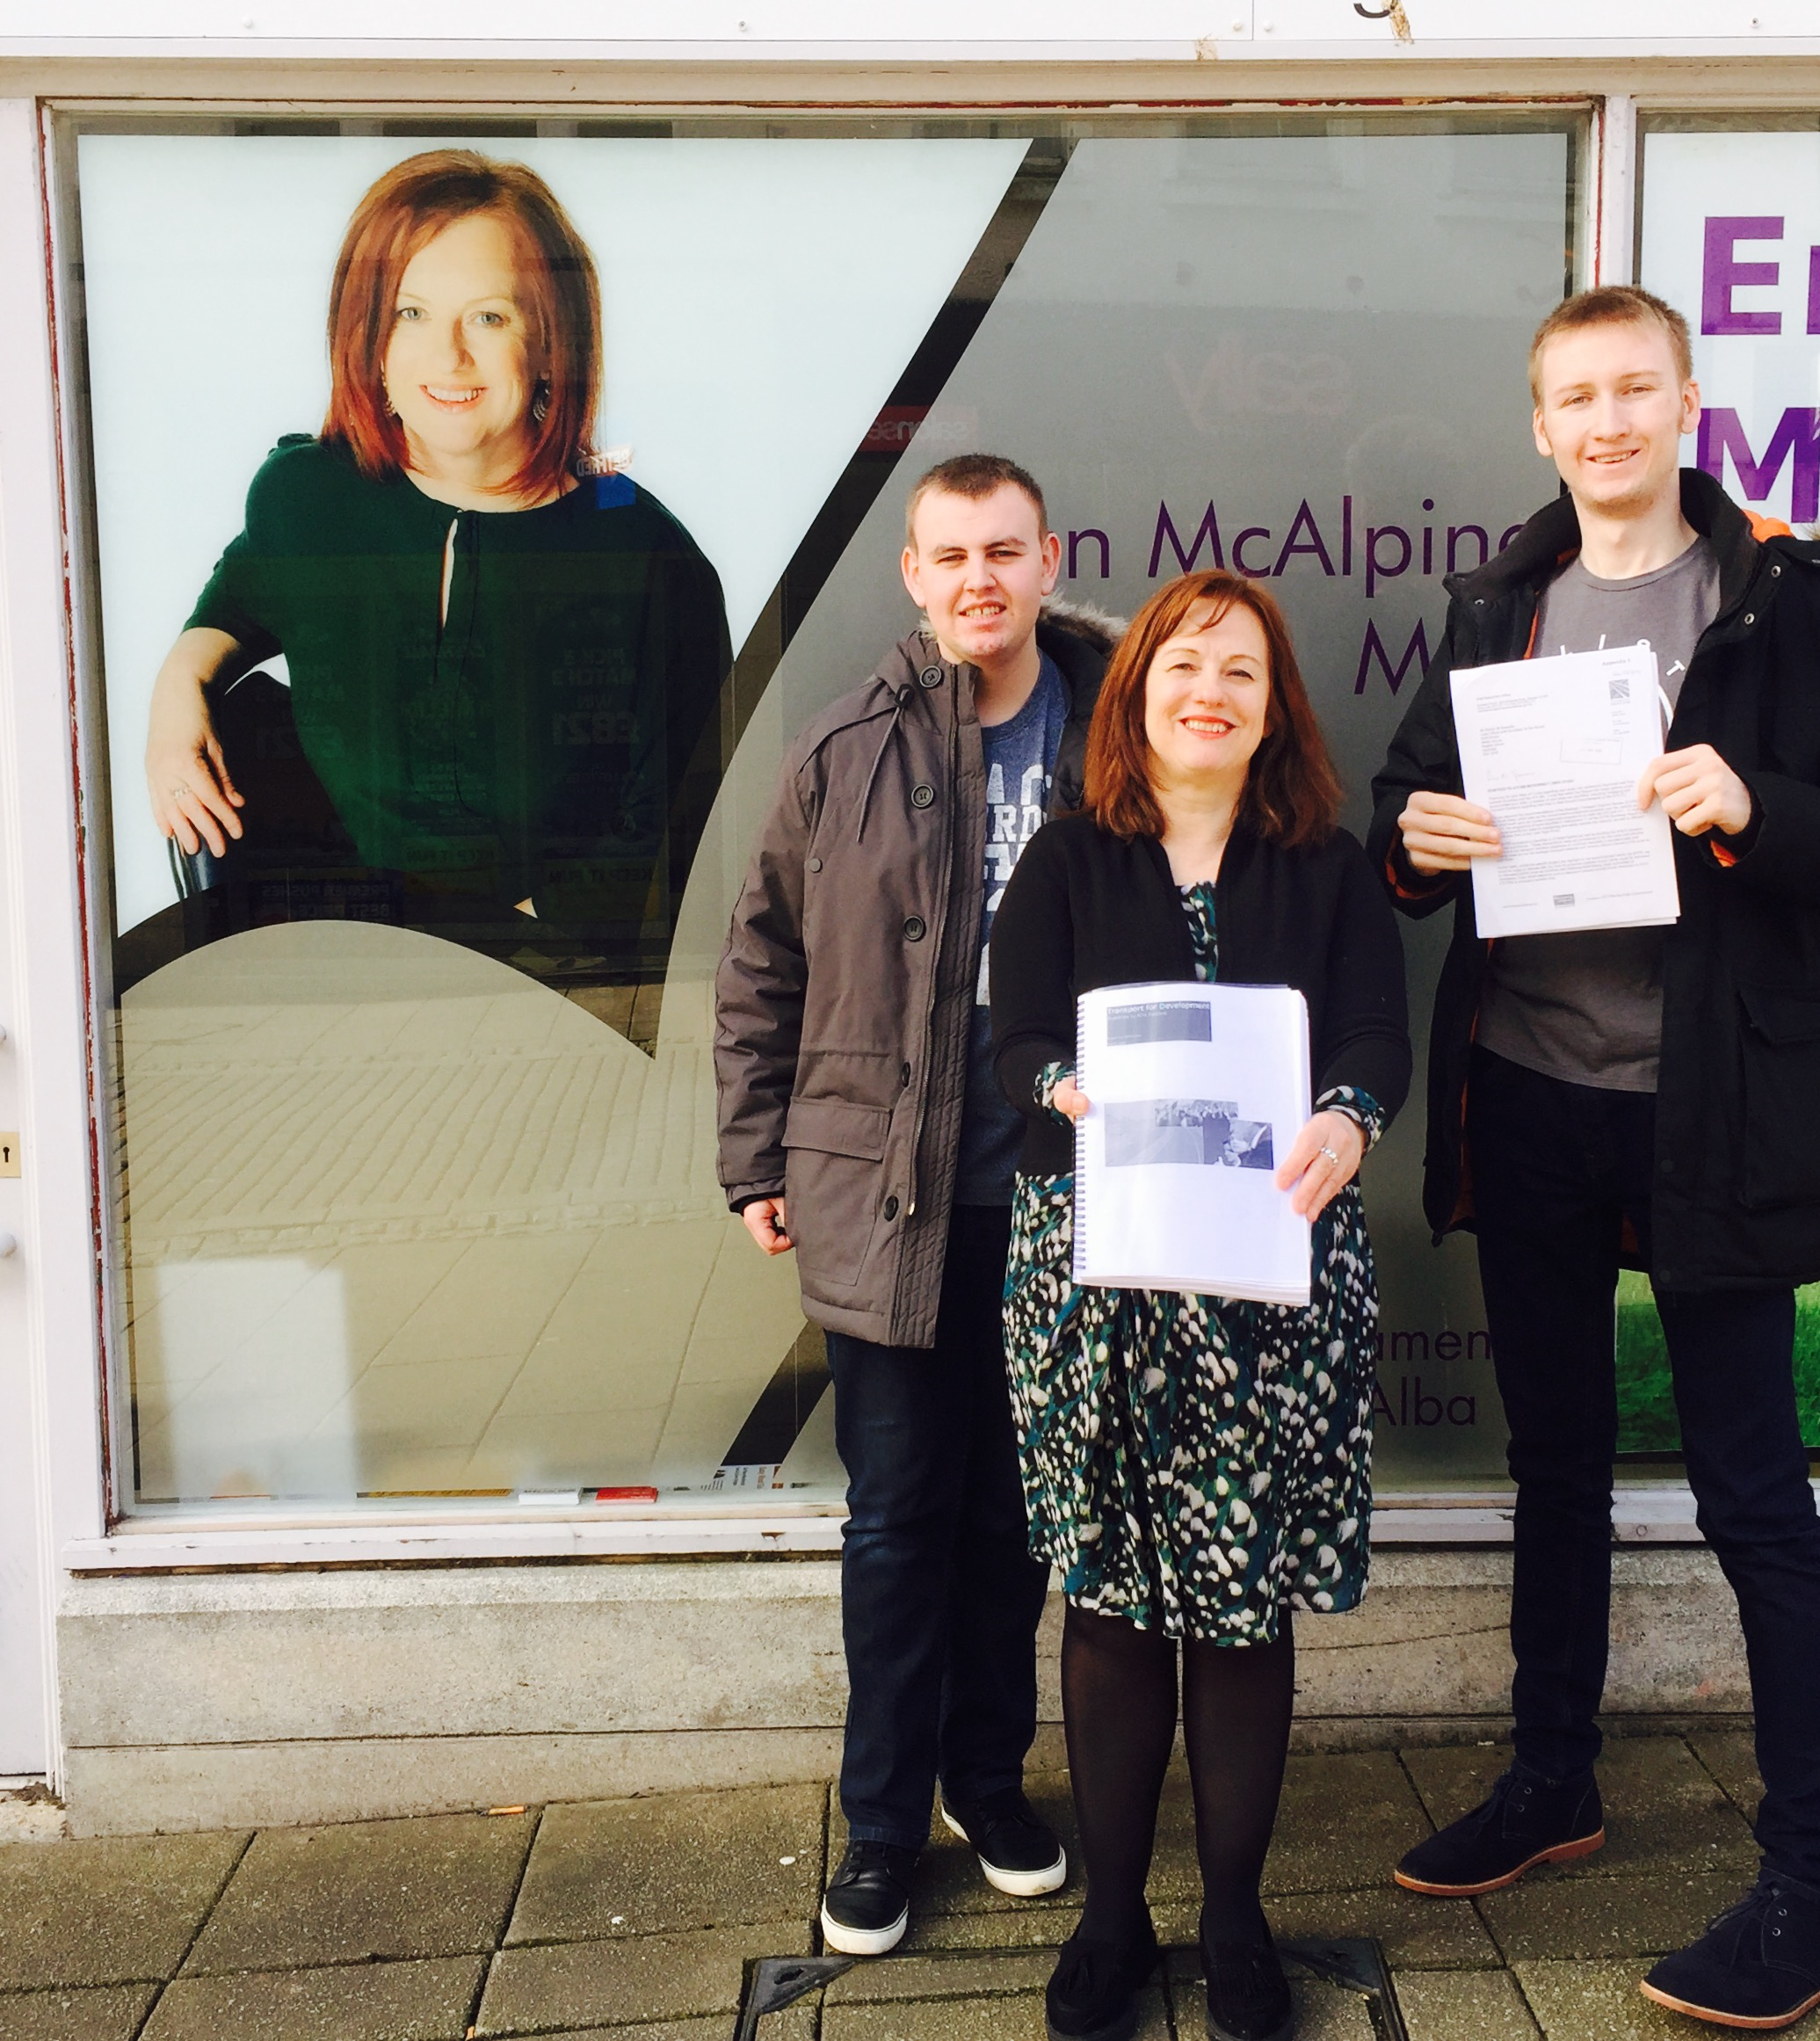 Joan_McAlpine_and_Dual_the_A75_campaign.jpg